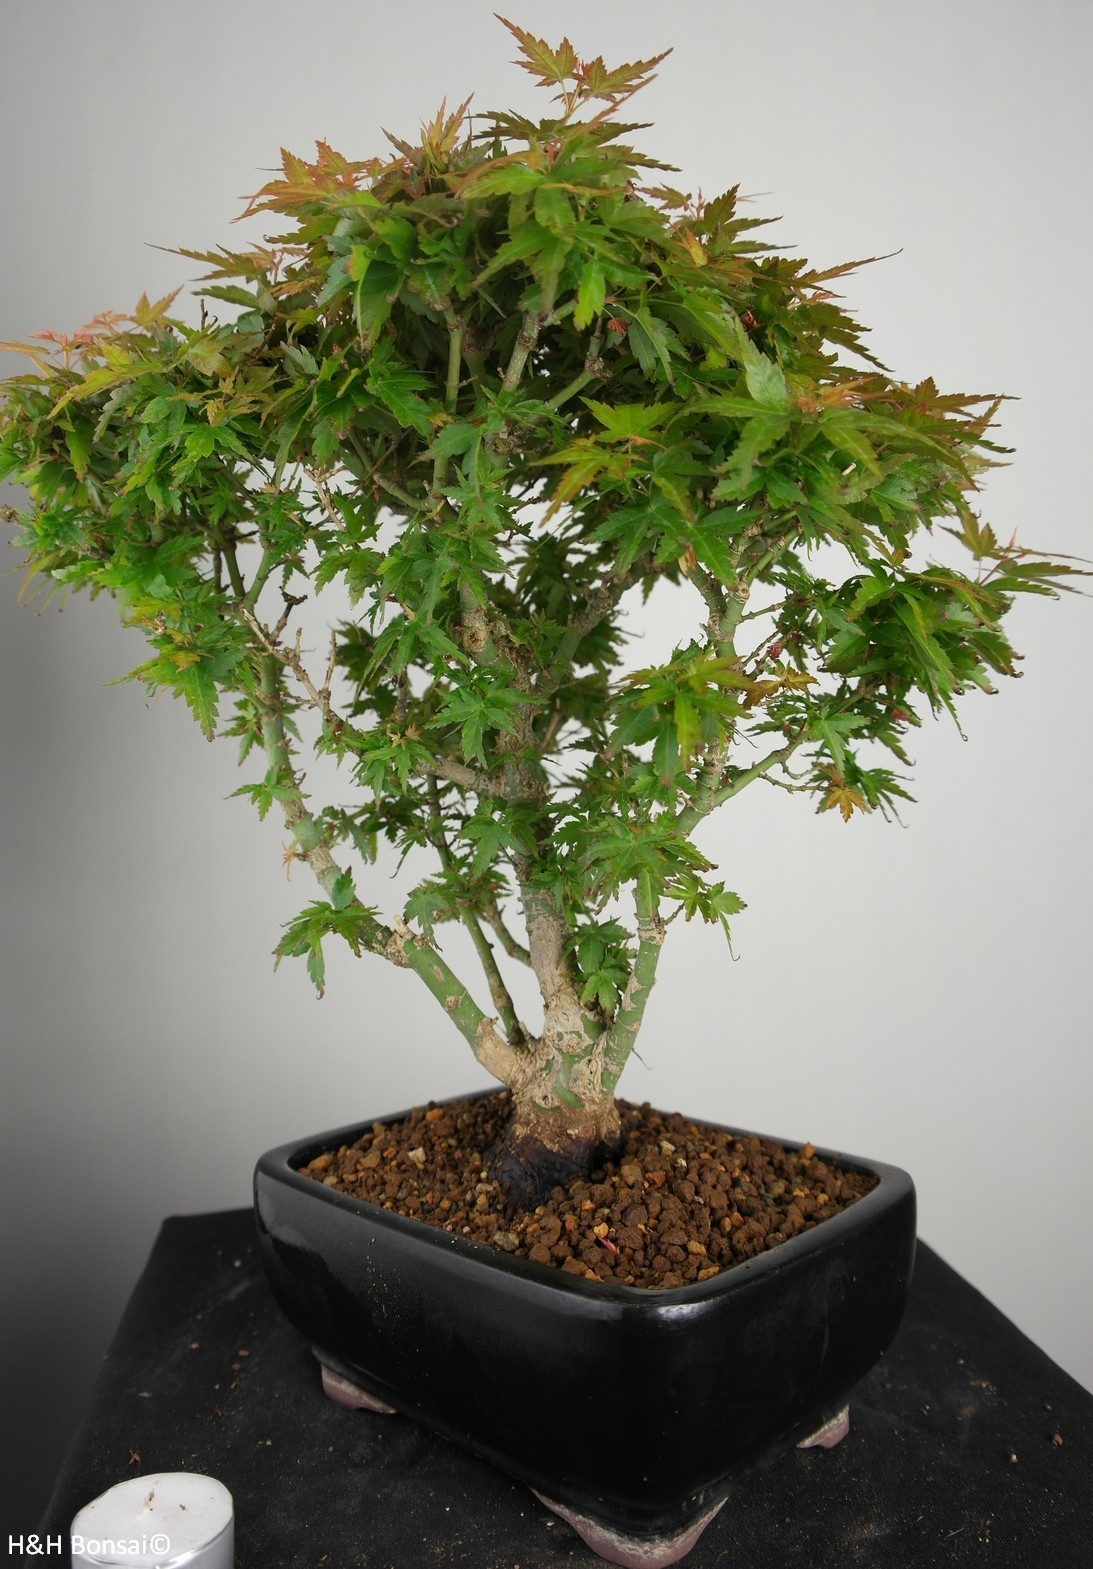 Bonsai Japanese Maple Kotohime, Acer palmatum Kotohime, no. 7695